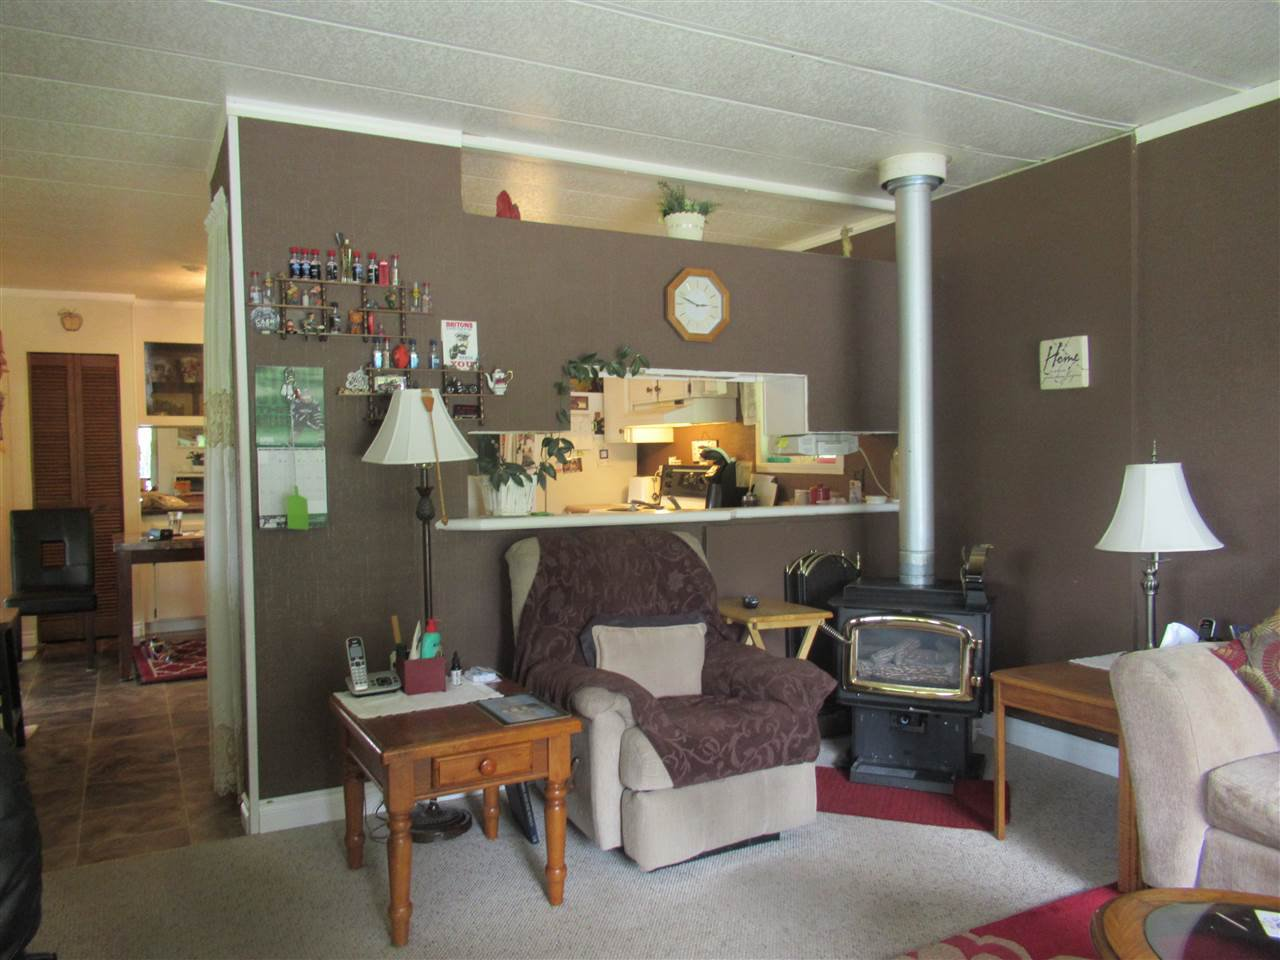 Photo 7: Photos: 1224 DESAUTEL Road in Williams Lake: Williams Lake - Rural East Manufactured Home for sale (Williams Lake (Zone 27))  : MLS®# R2376873